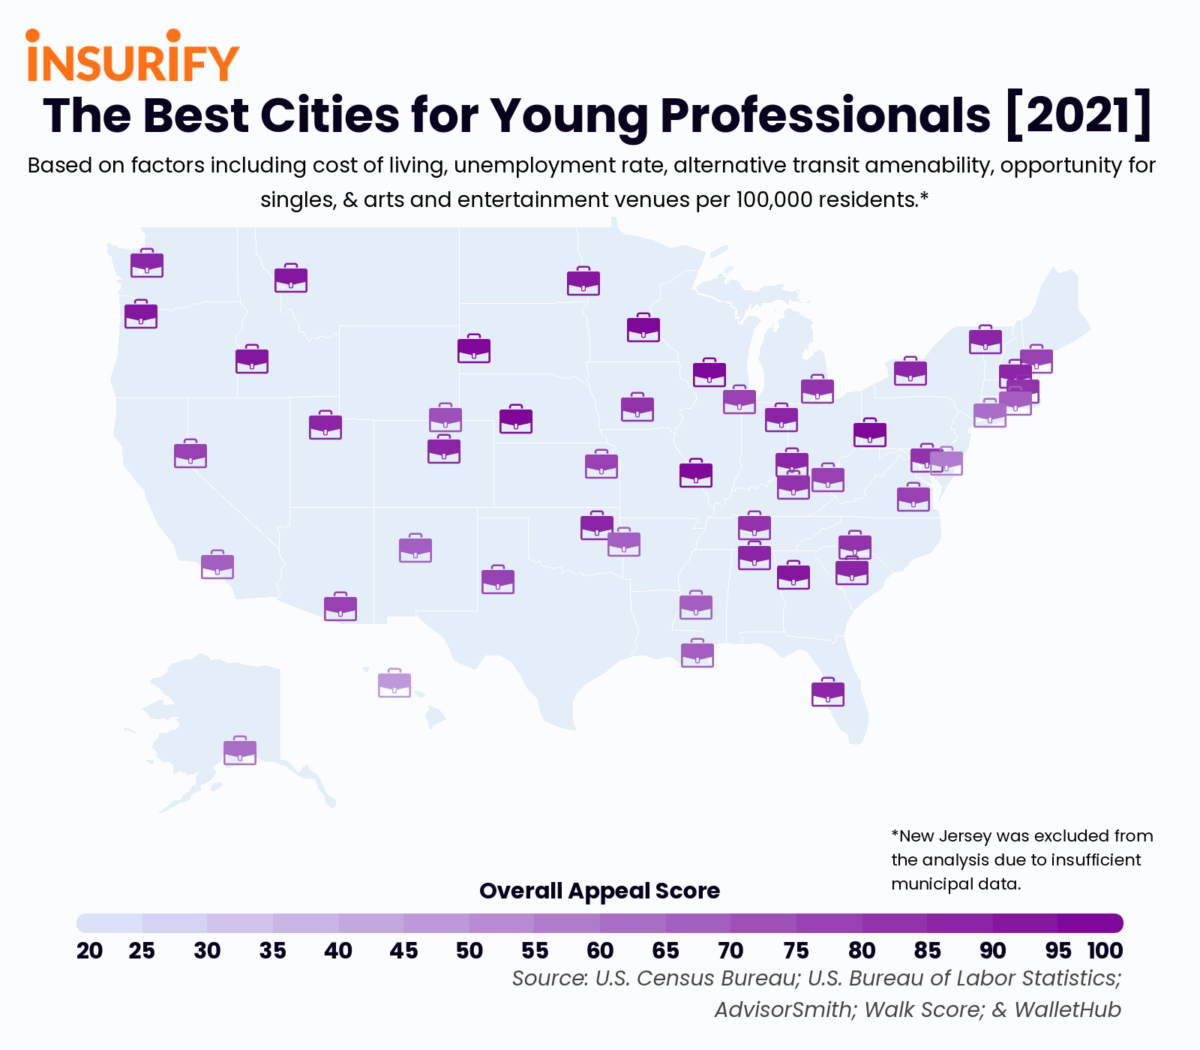 Icon map showing the best city for young professionals in each state